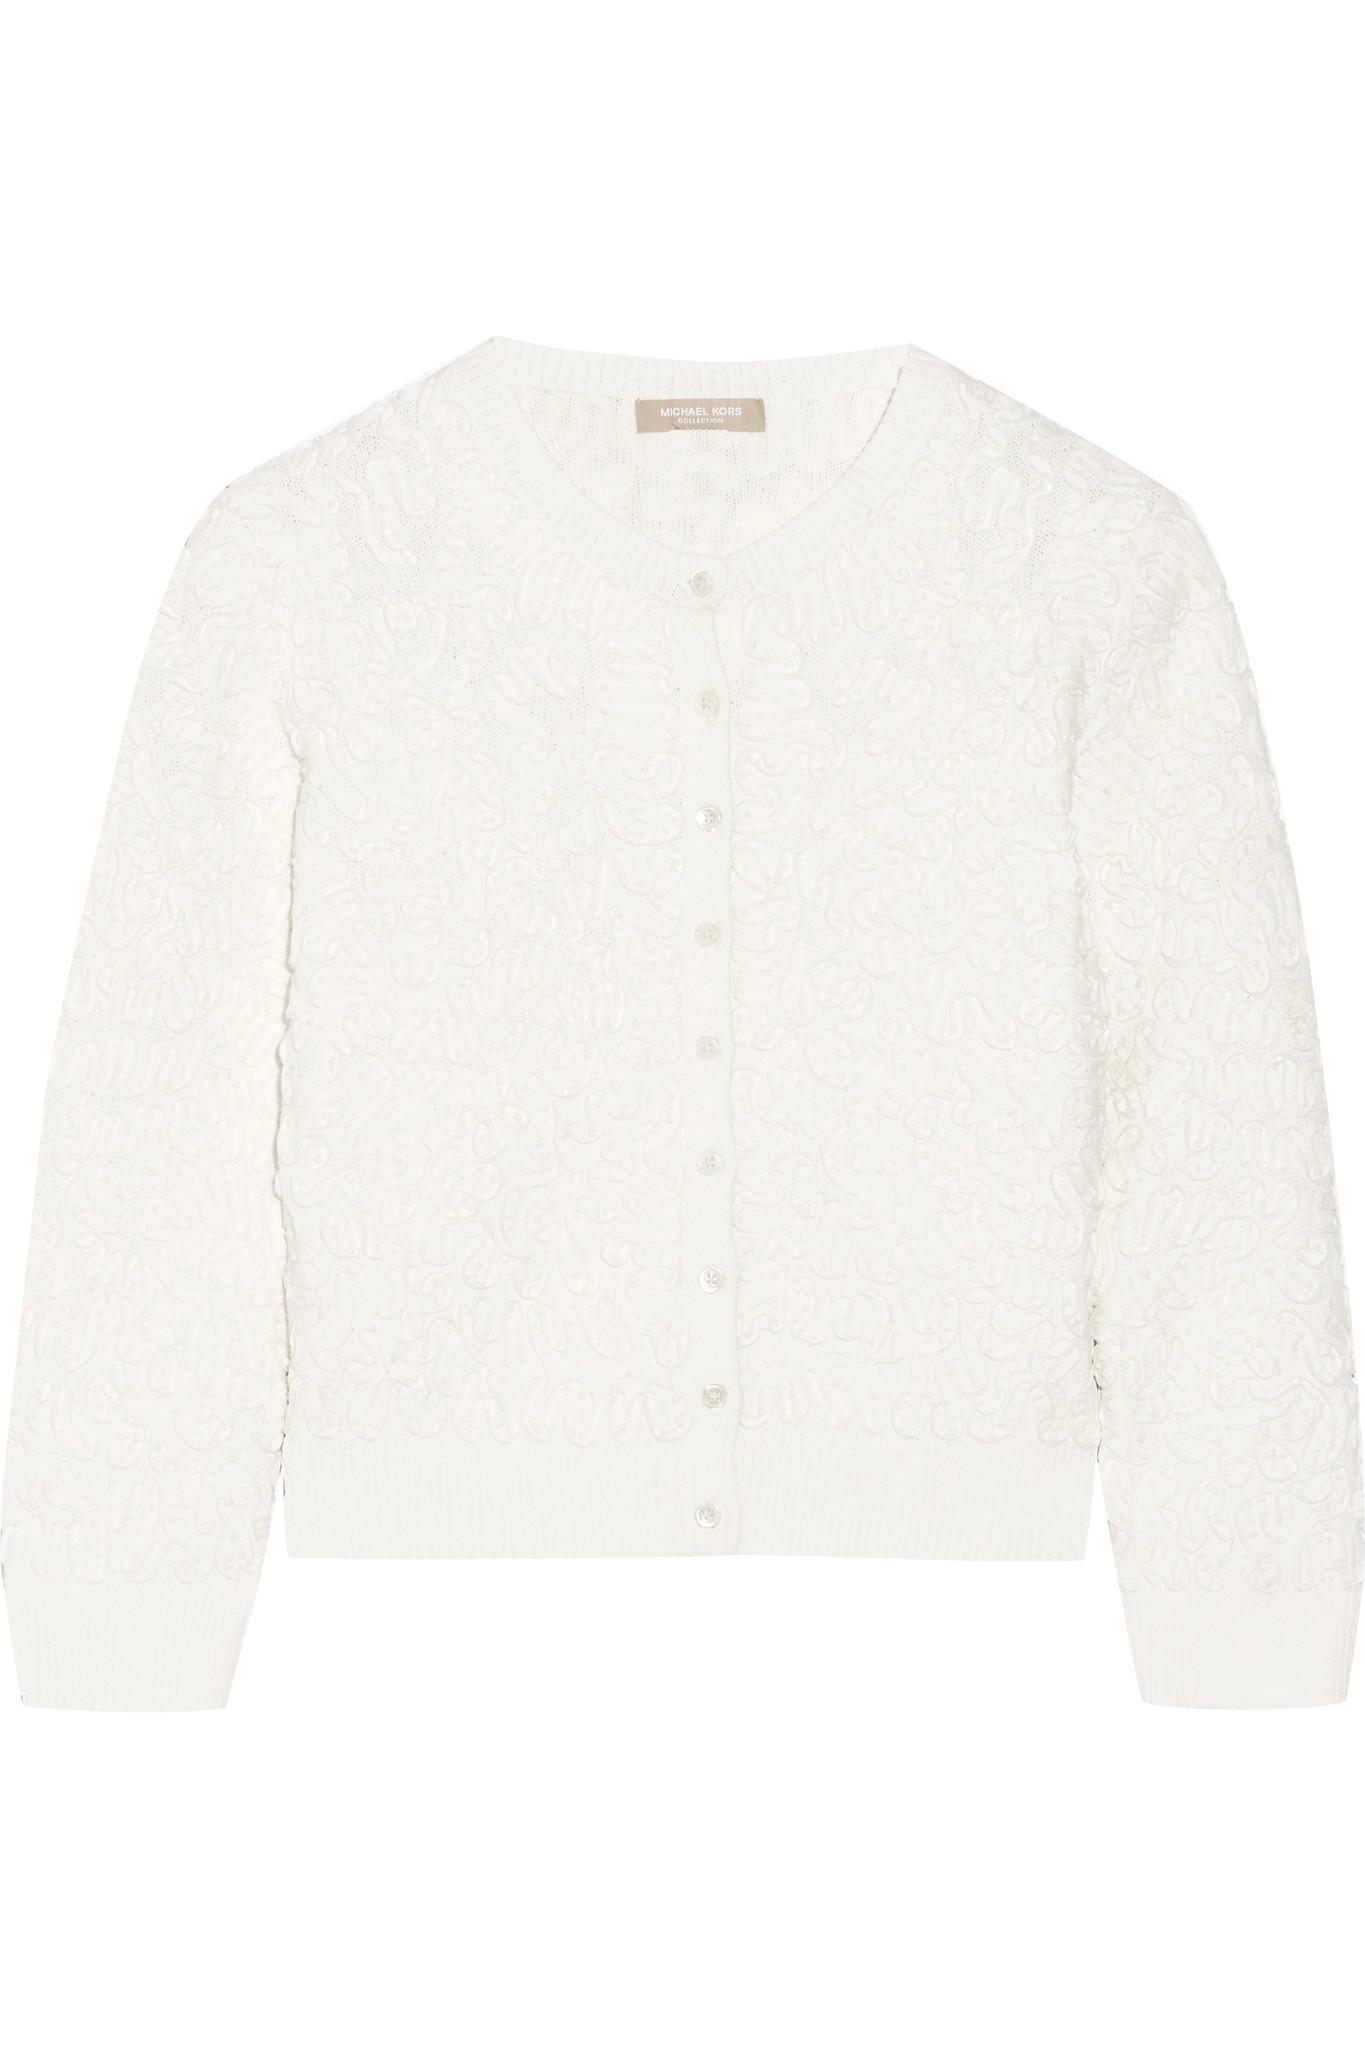 Michael kors Cropped Soutache Stretch-knit Cardigan in